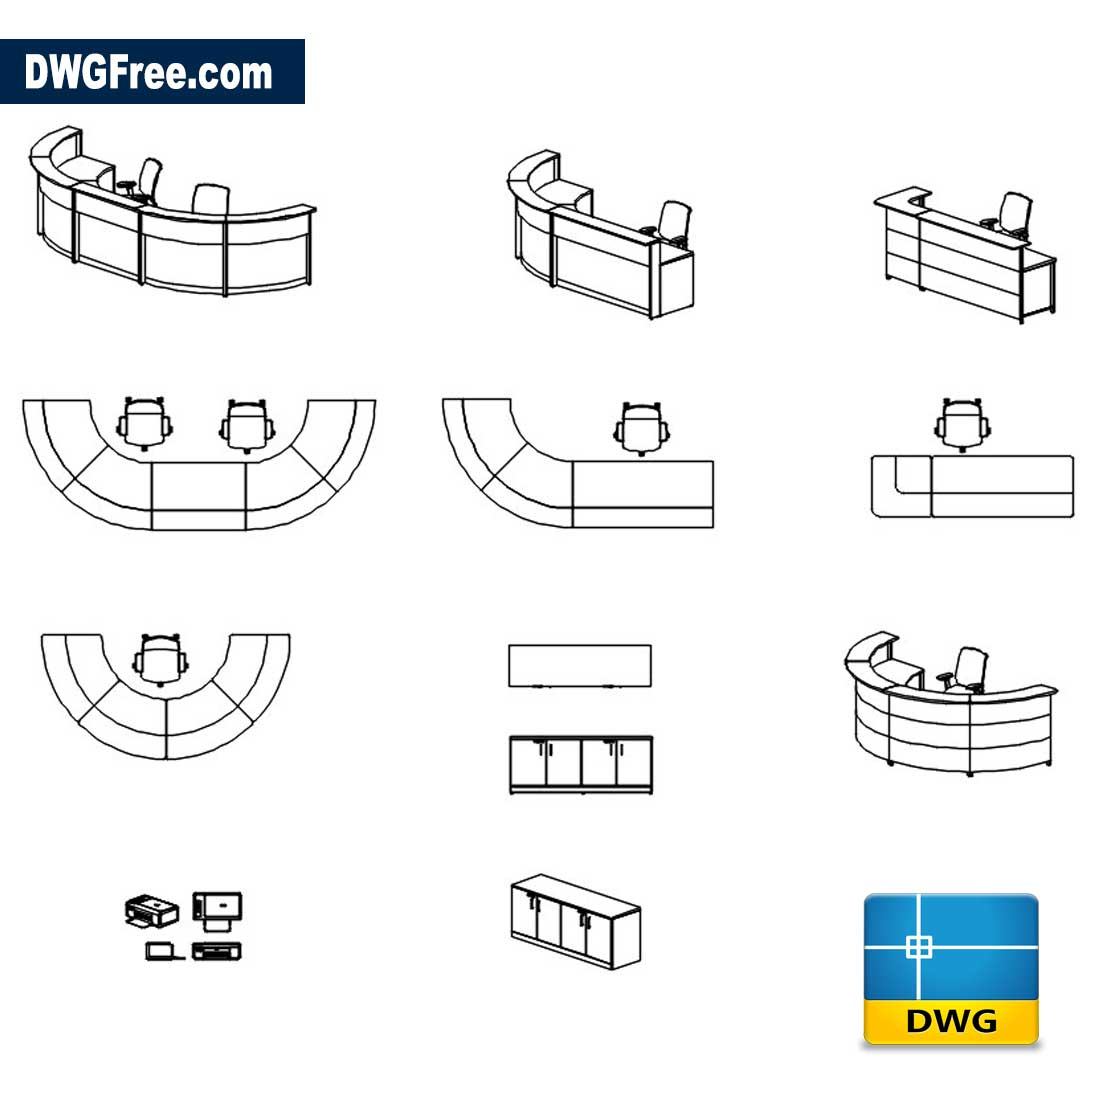 Picture of: Reception Desk Cad Block Dwg Drawing Download In Autocad